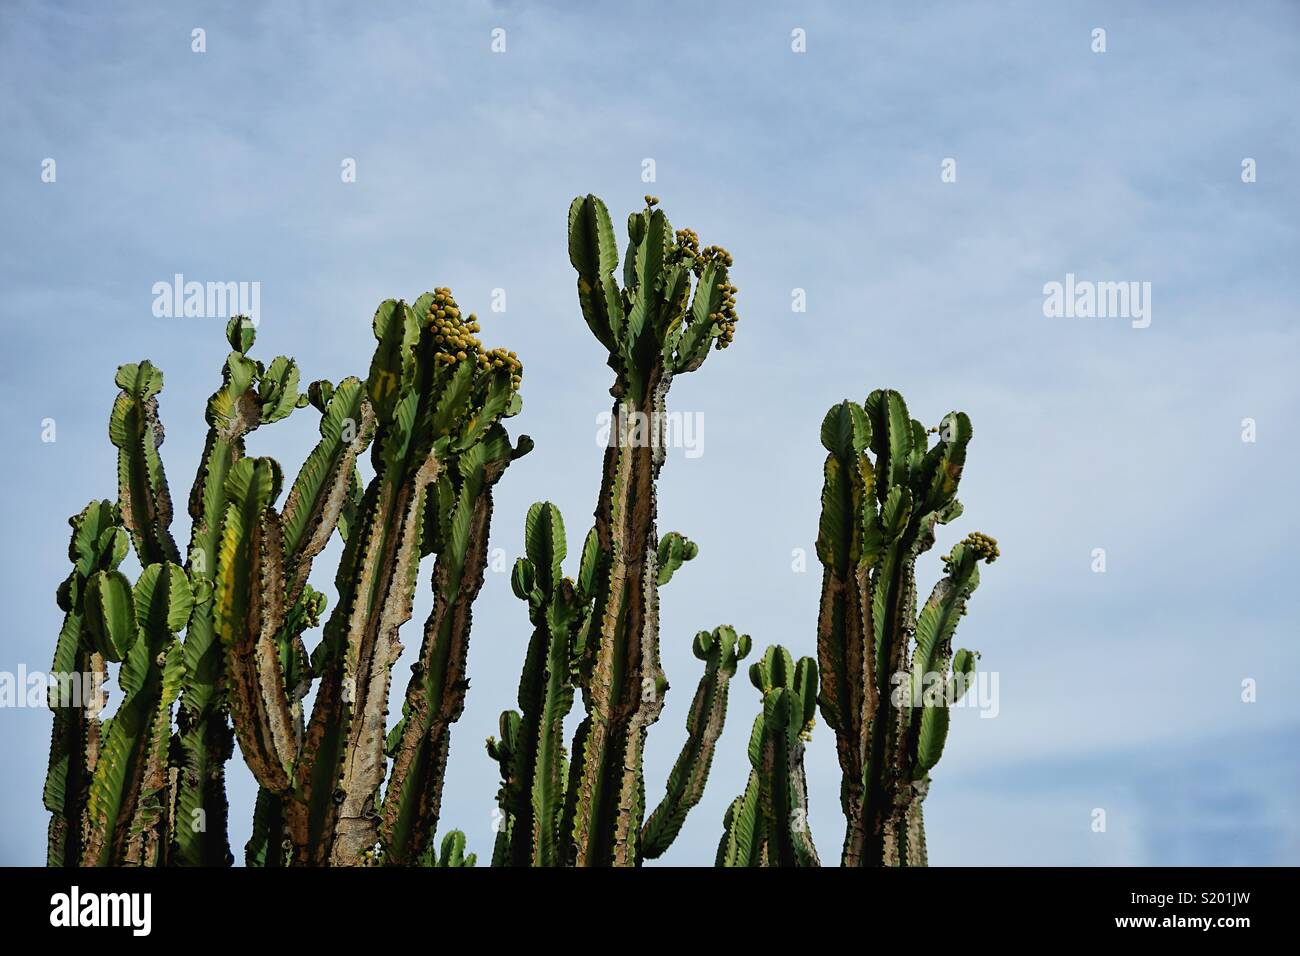 This is the cactus from cactus garden in The Getty Center in LA. Intrigued by the elegance of them! - Stock Image